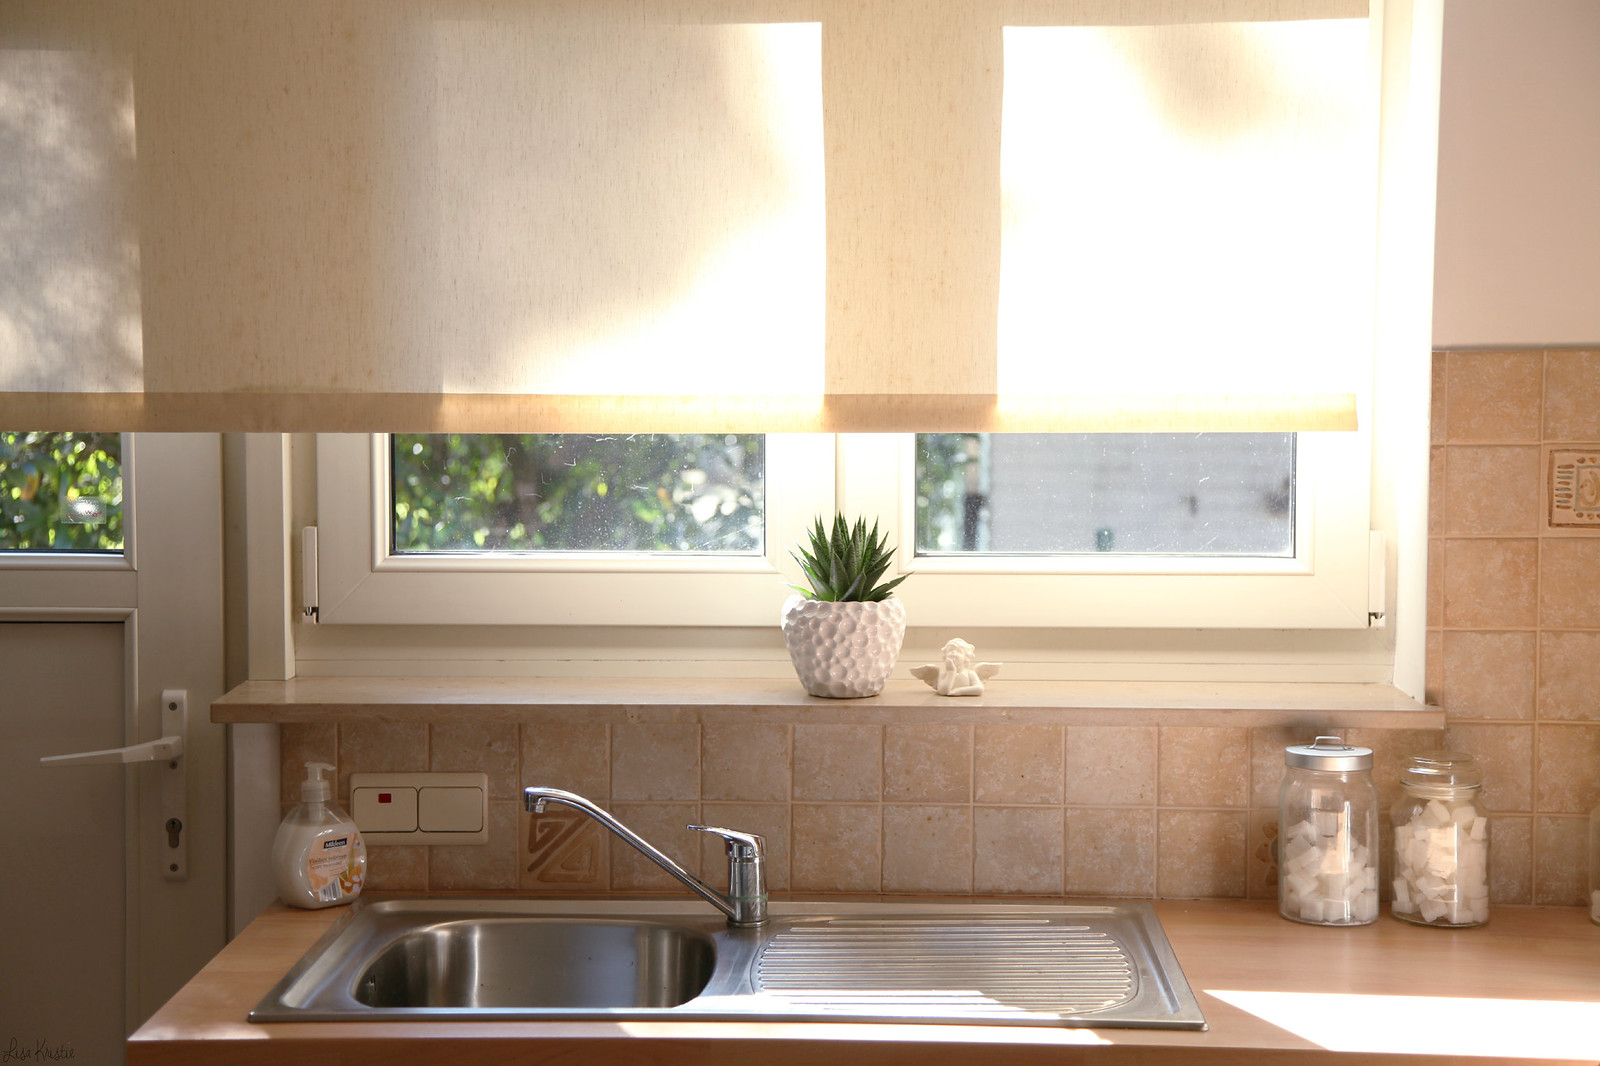 sunny september kitchen interior home sink window sun plants beige white light bright pale neutral cozy warm home decoration shabby chic